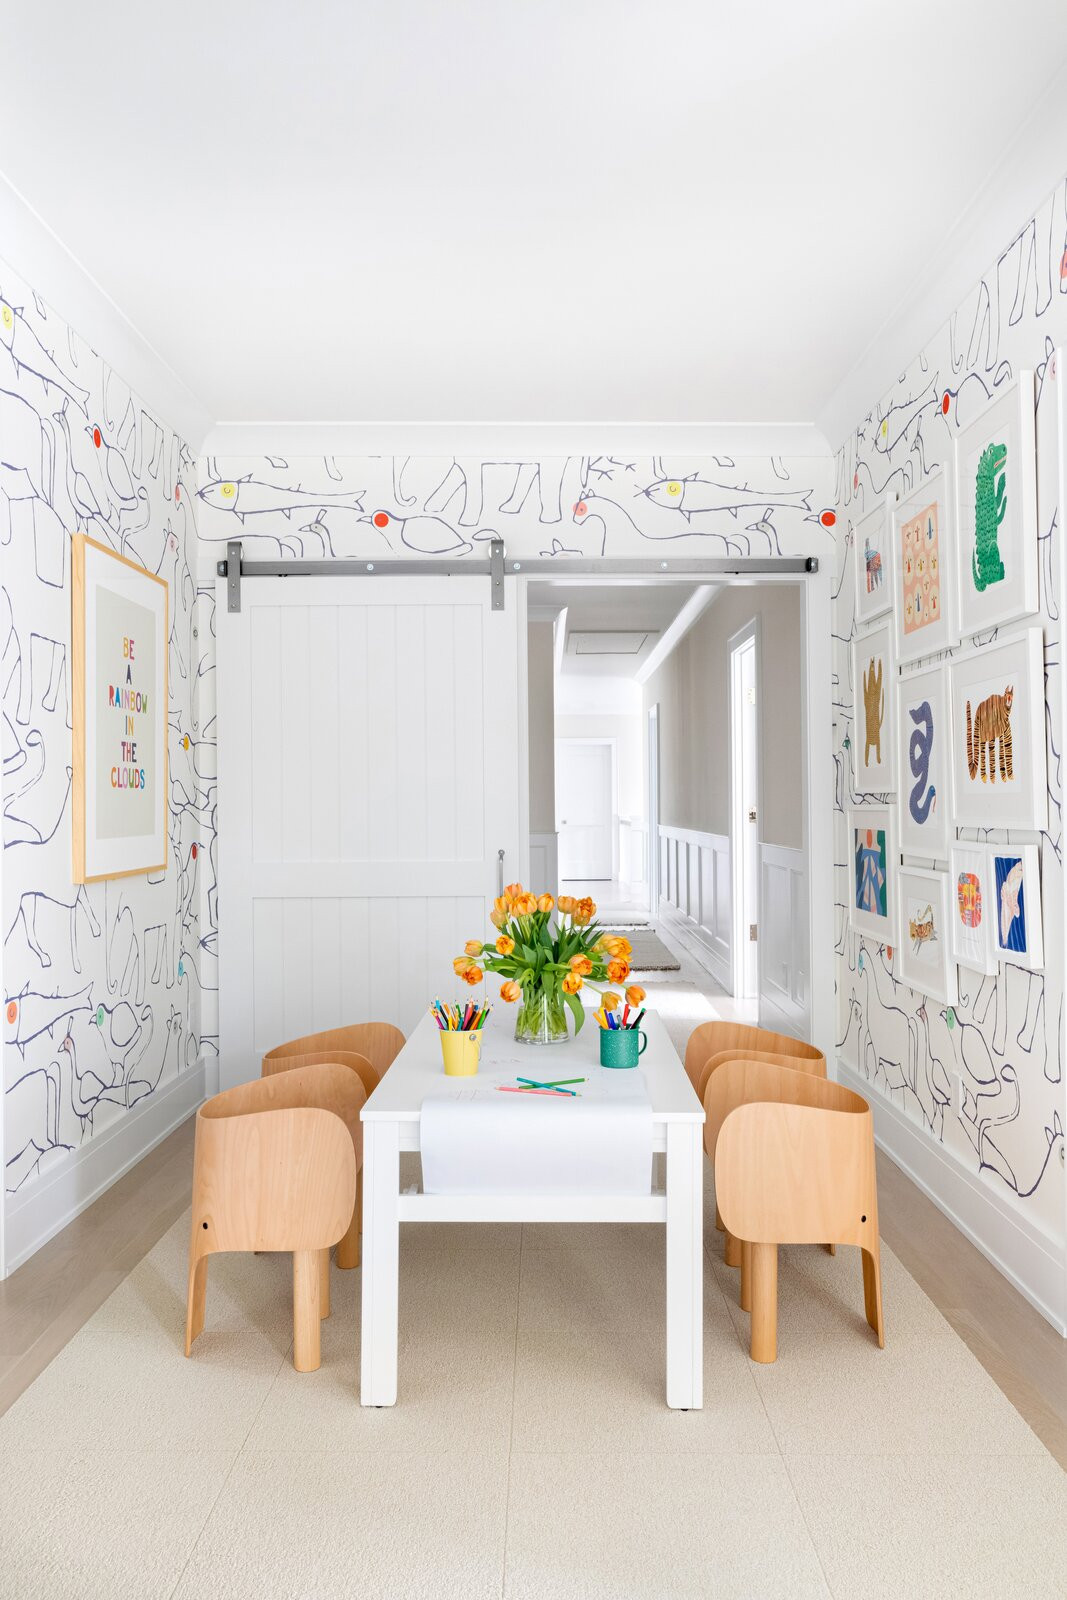 Chango & Co. built a home in Westchester, New York, for a young couple and their newborn baby. Here, the playroom is outfitted with furniture from Finnish Design Shop and Bien Fait wallpaper inspired by childish doodles.  Photo 10 of 13 in How to Design a Room That Grows Up With Your Kids